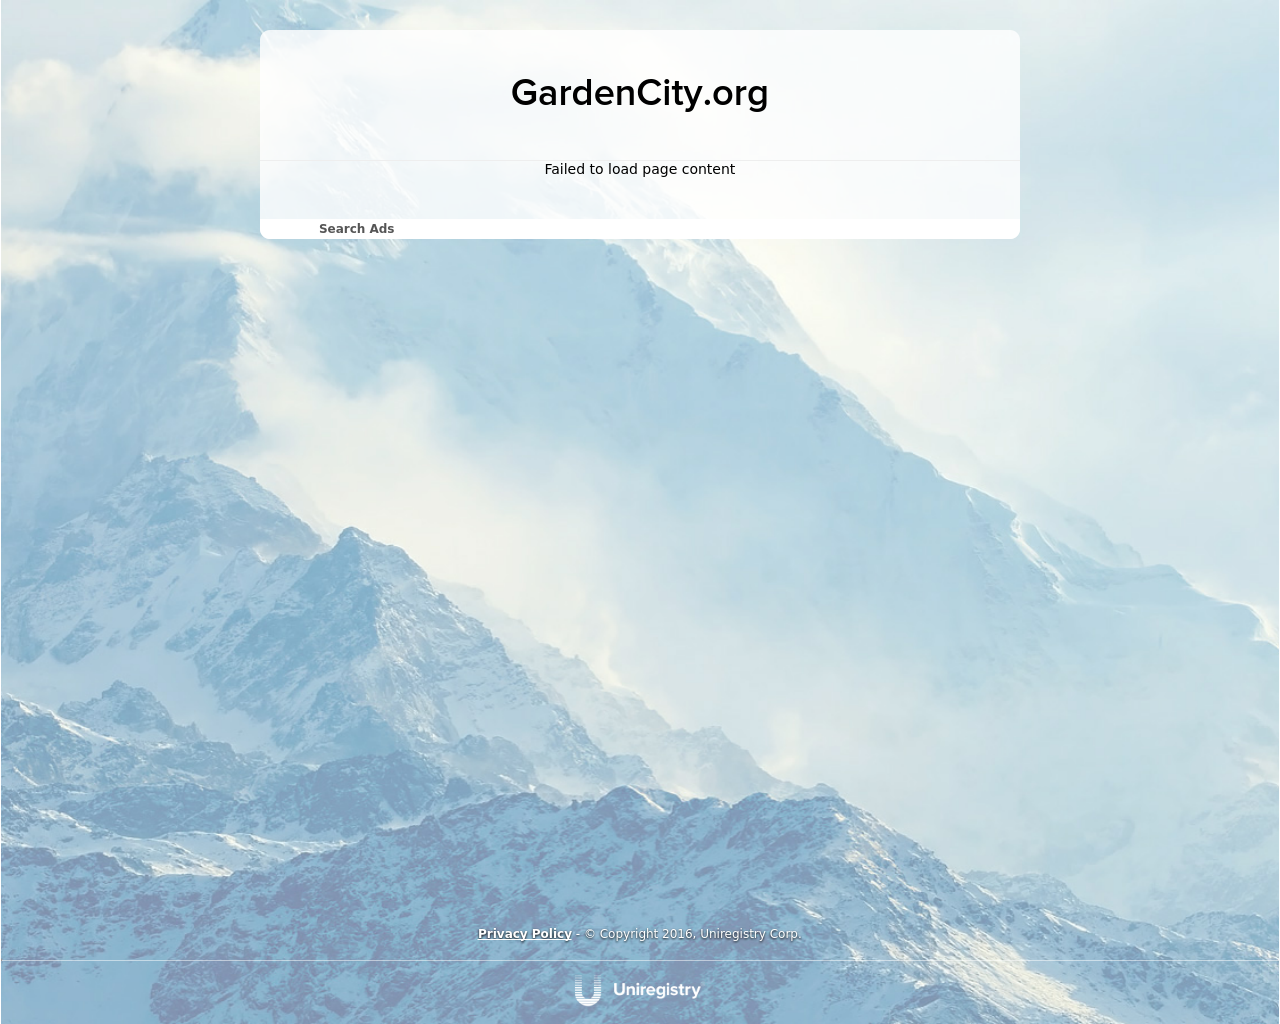 GardenCity.org-Advertising-Reviews-Pricing